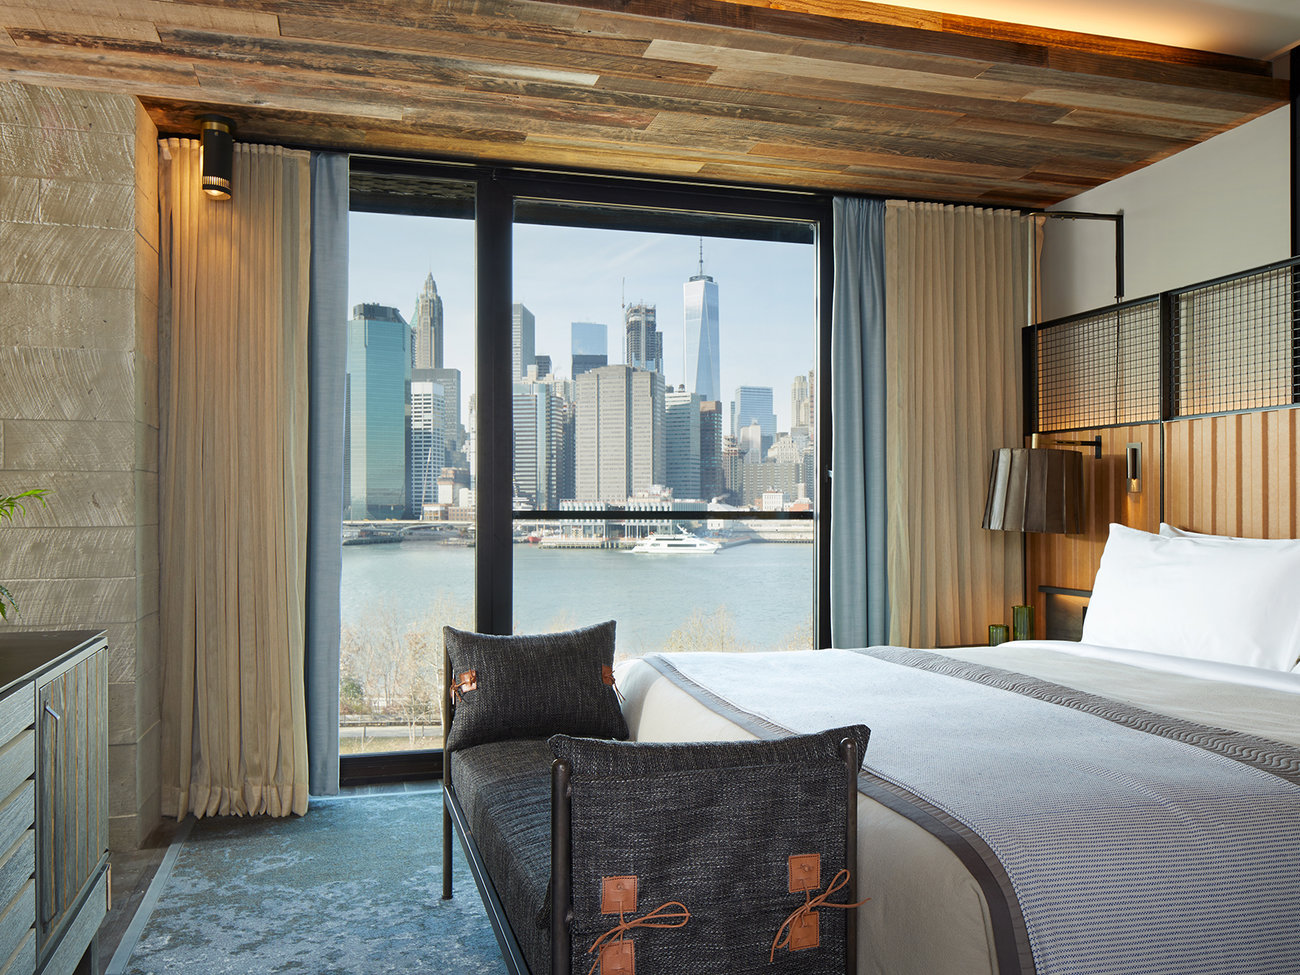 1 Hotel Brooklyn Bridge in NYC